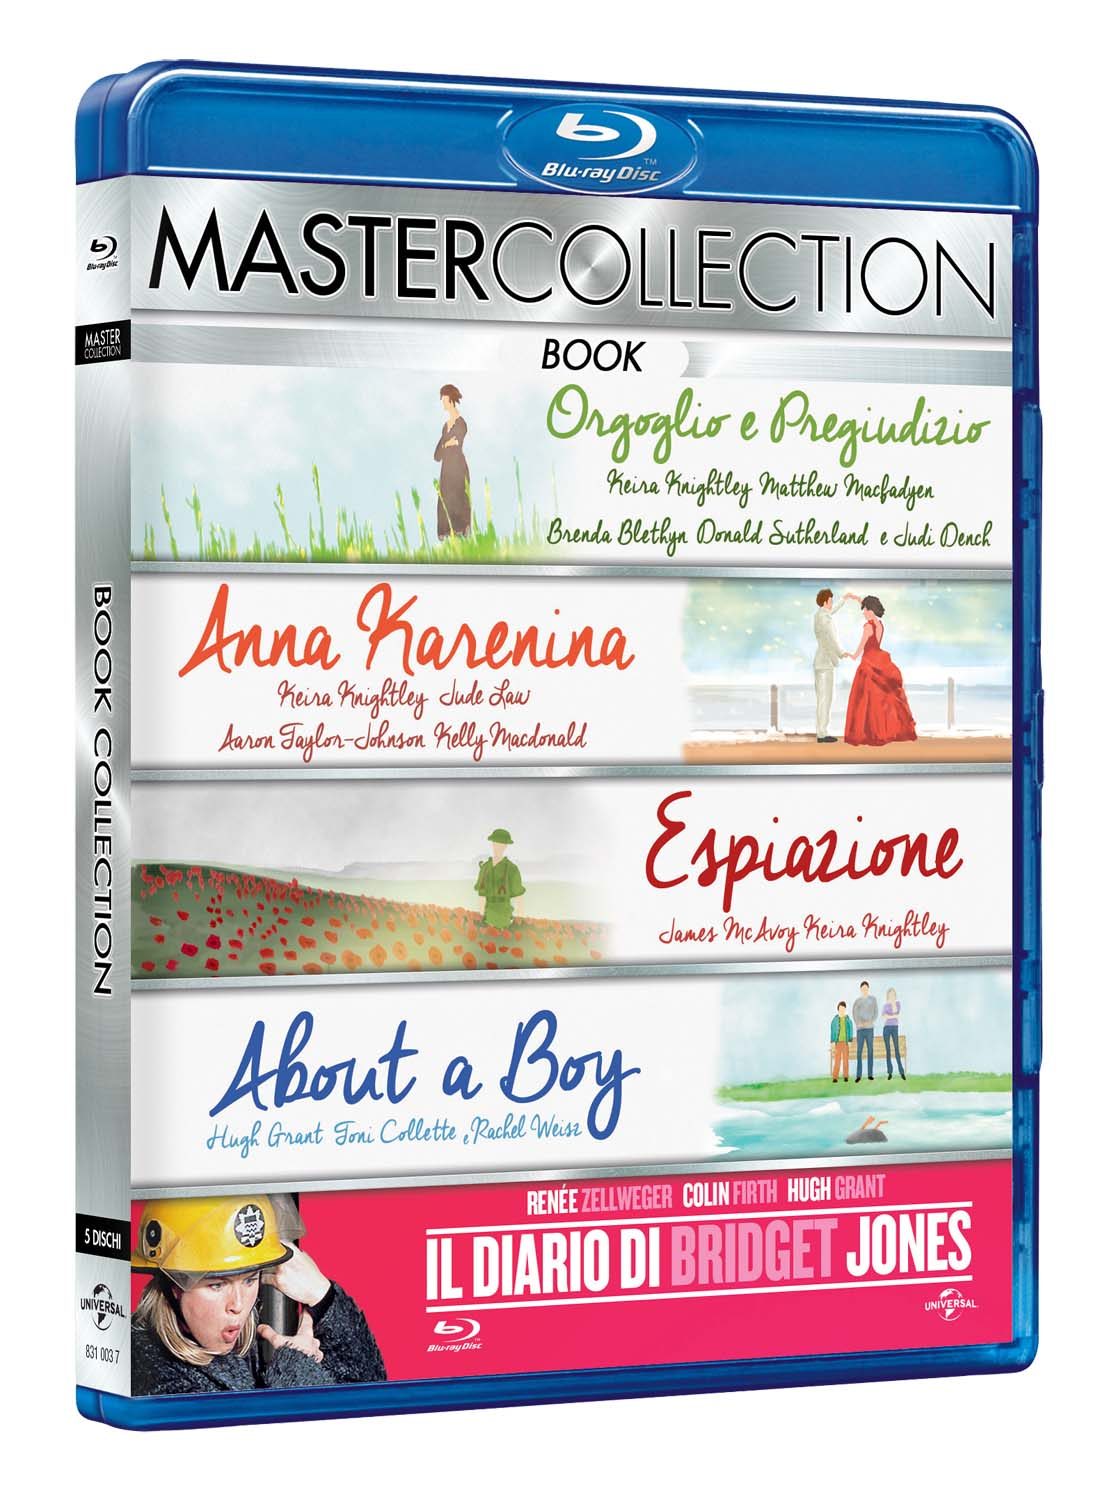 COF.BOOK MASTER COLLECTION (5 BLU-RAY)